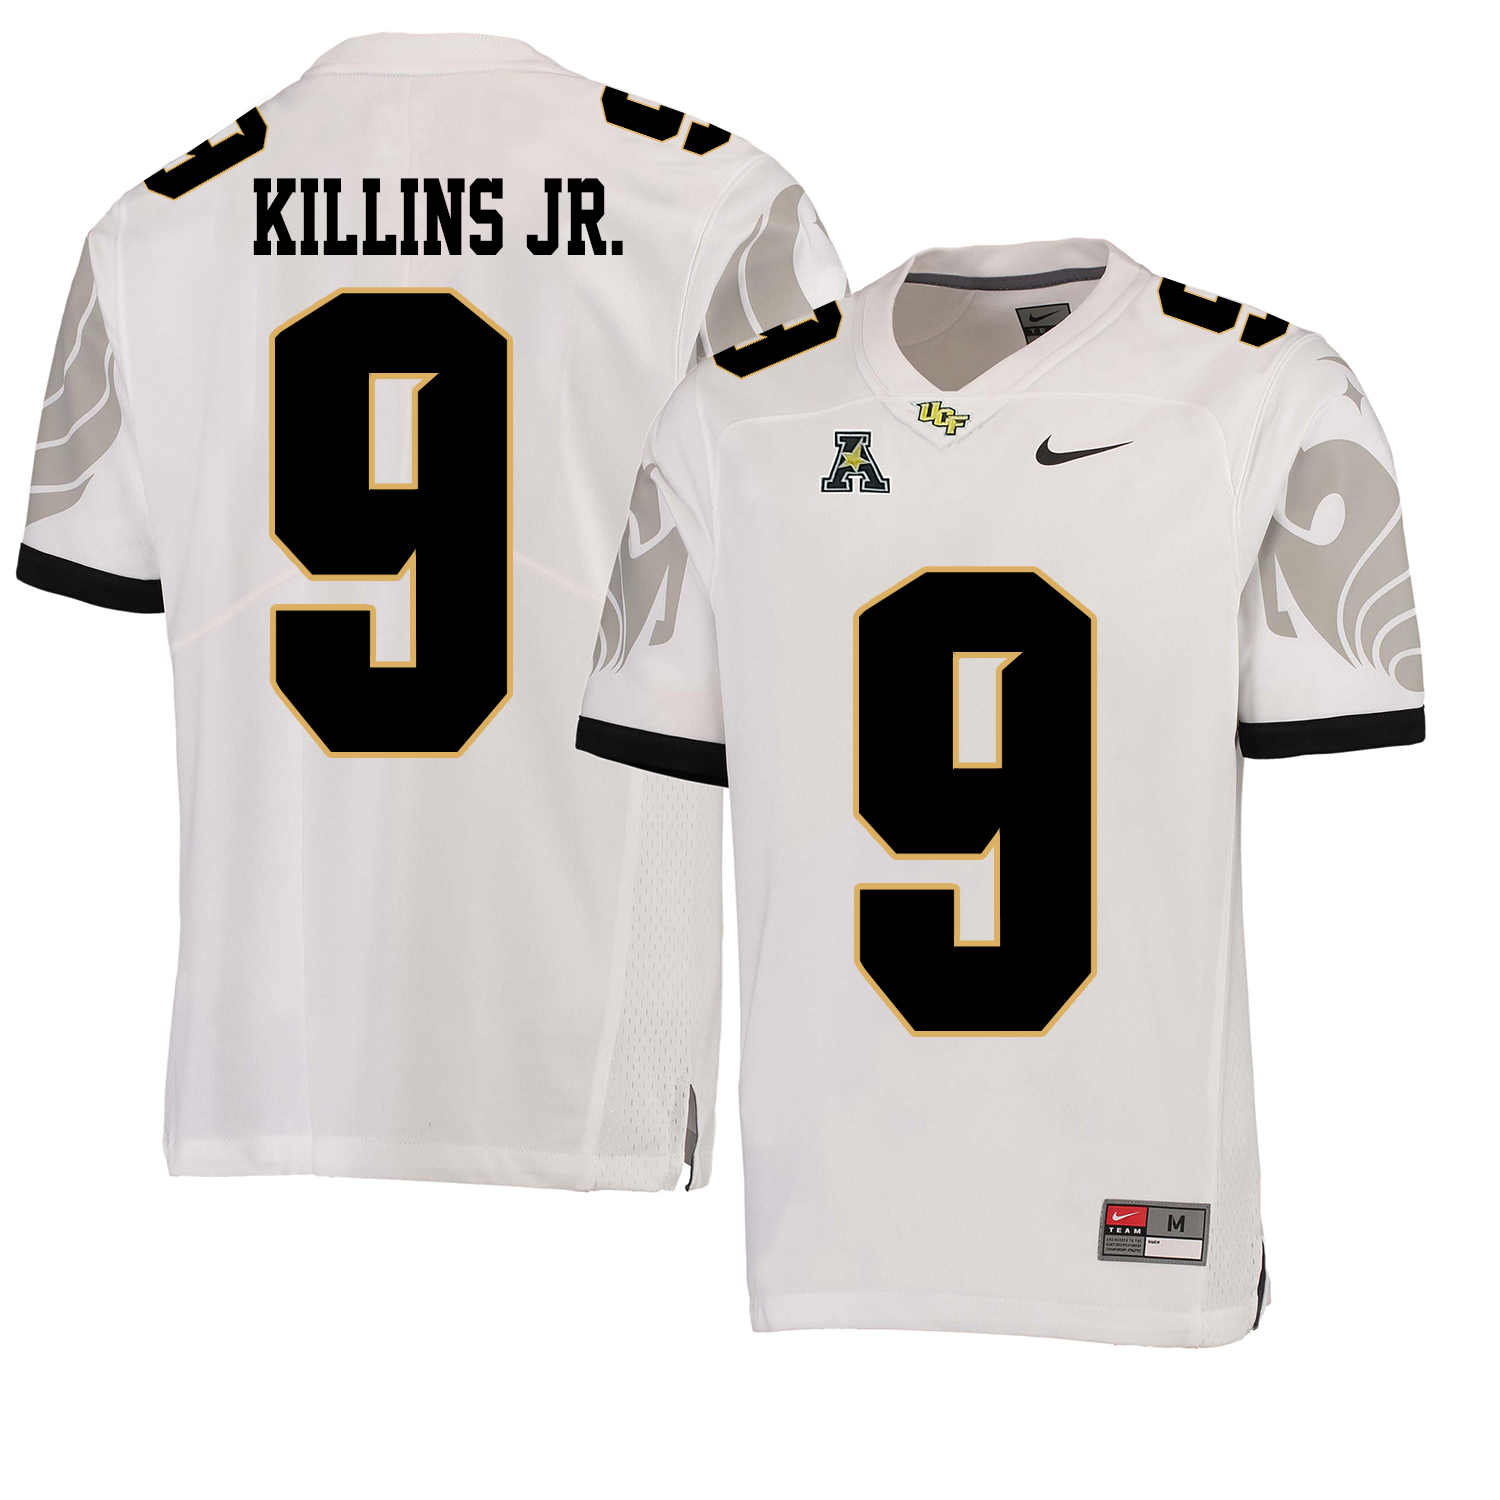 UCF Knights 9 Adrian Killins Jr. White College Football Jersey